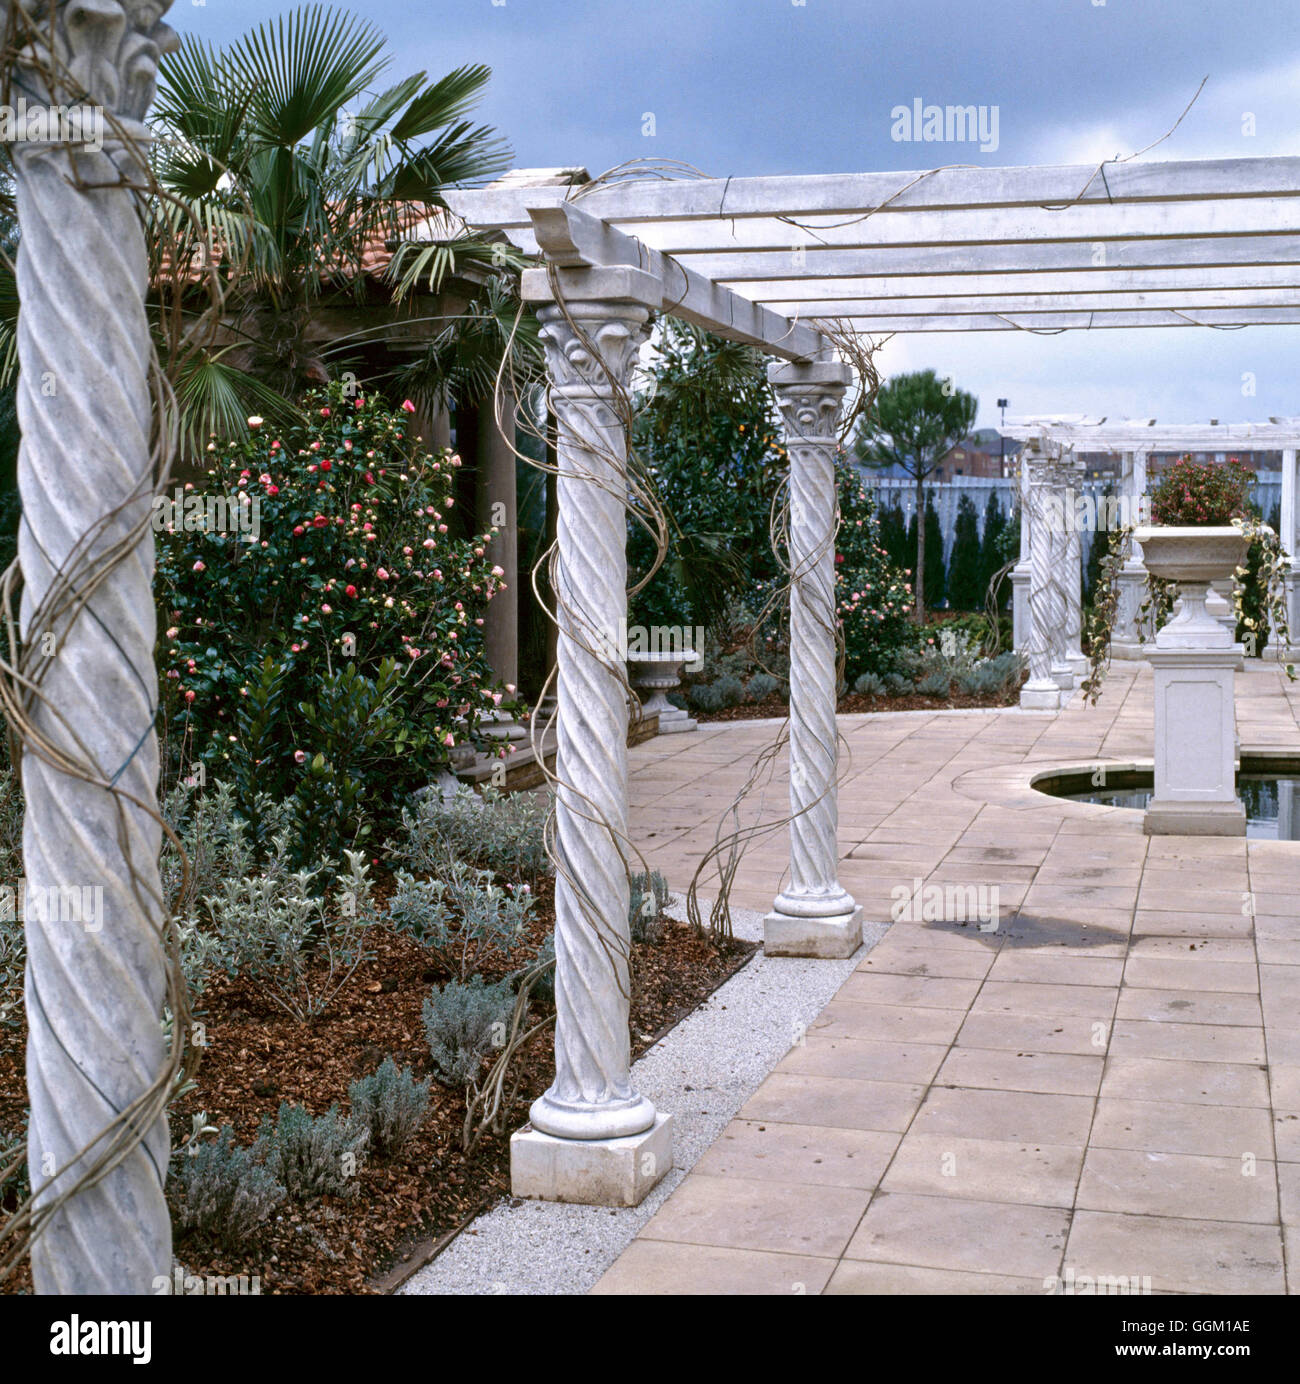 columns pergola photos columns pergola images alamy. Black Bedroom Furniture Sets. Home Design Ideas